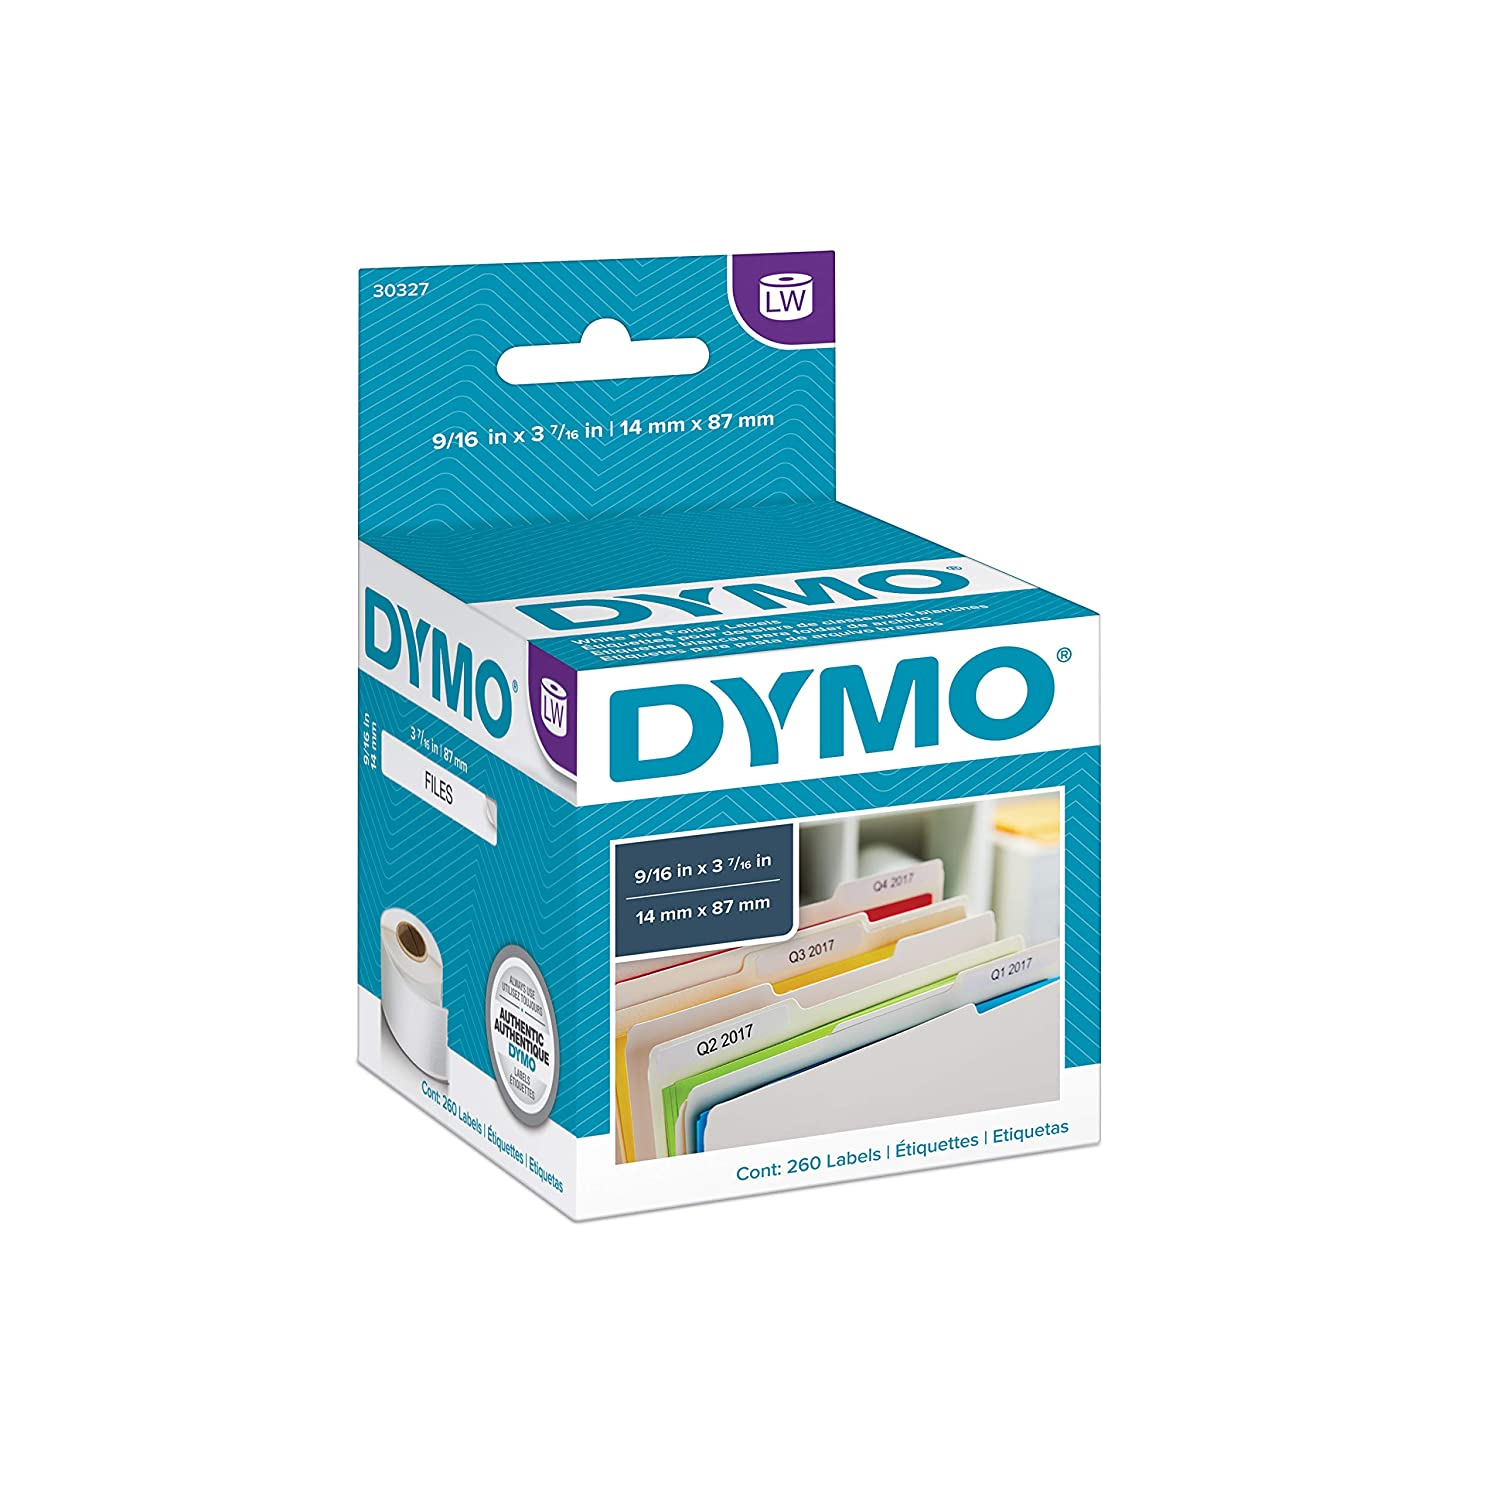 B00002QUKY DYMO LW 1-Up File Folder Labels for LabelWriter Label Printers, White, 9/16'' x 3-7/16'', 2 Rolls of 130 (30327) 81Z7qjmSLZL